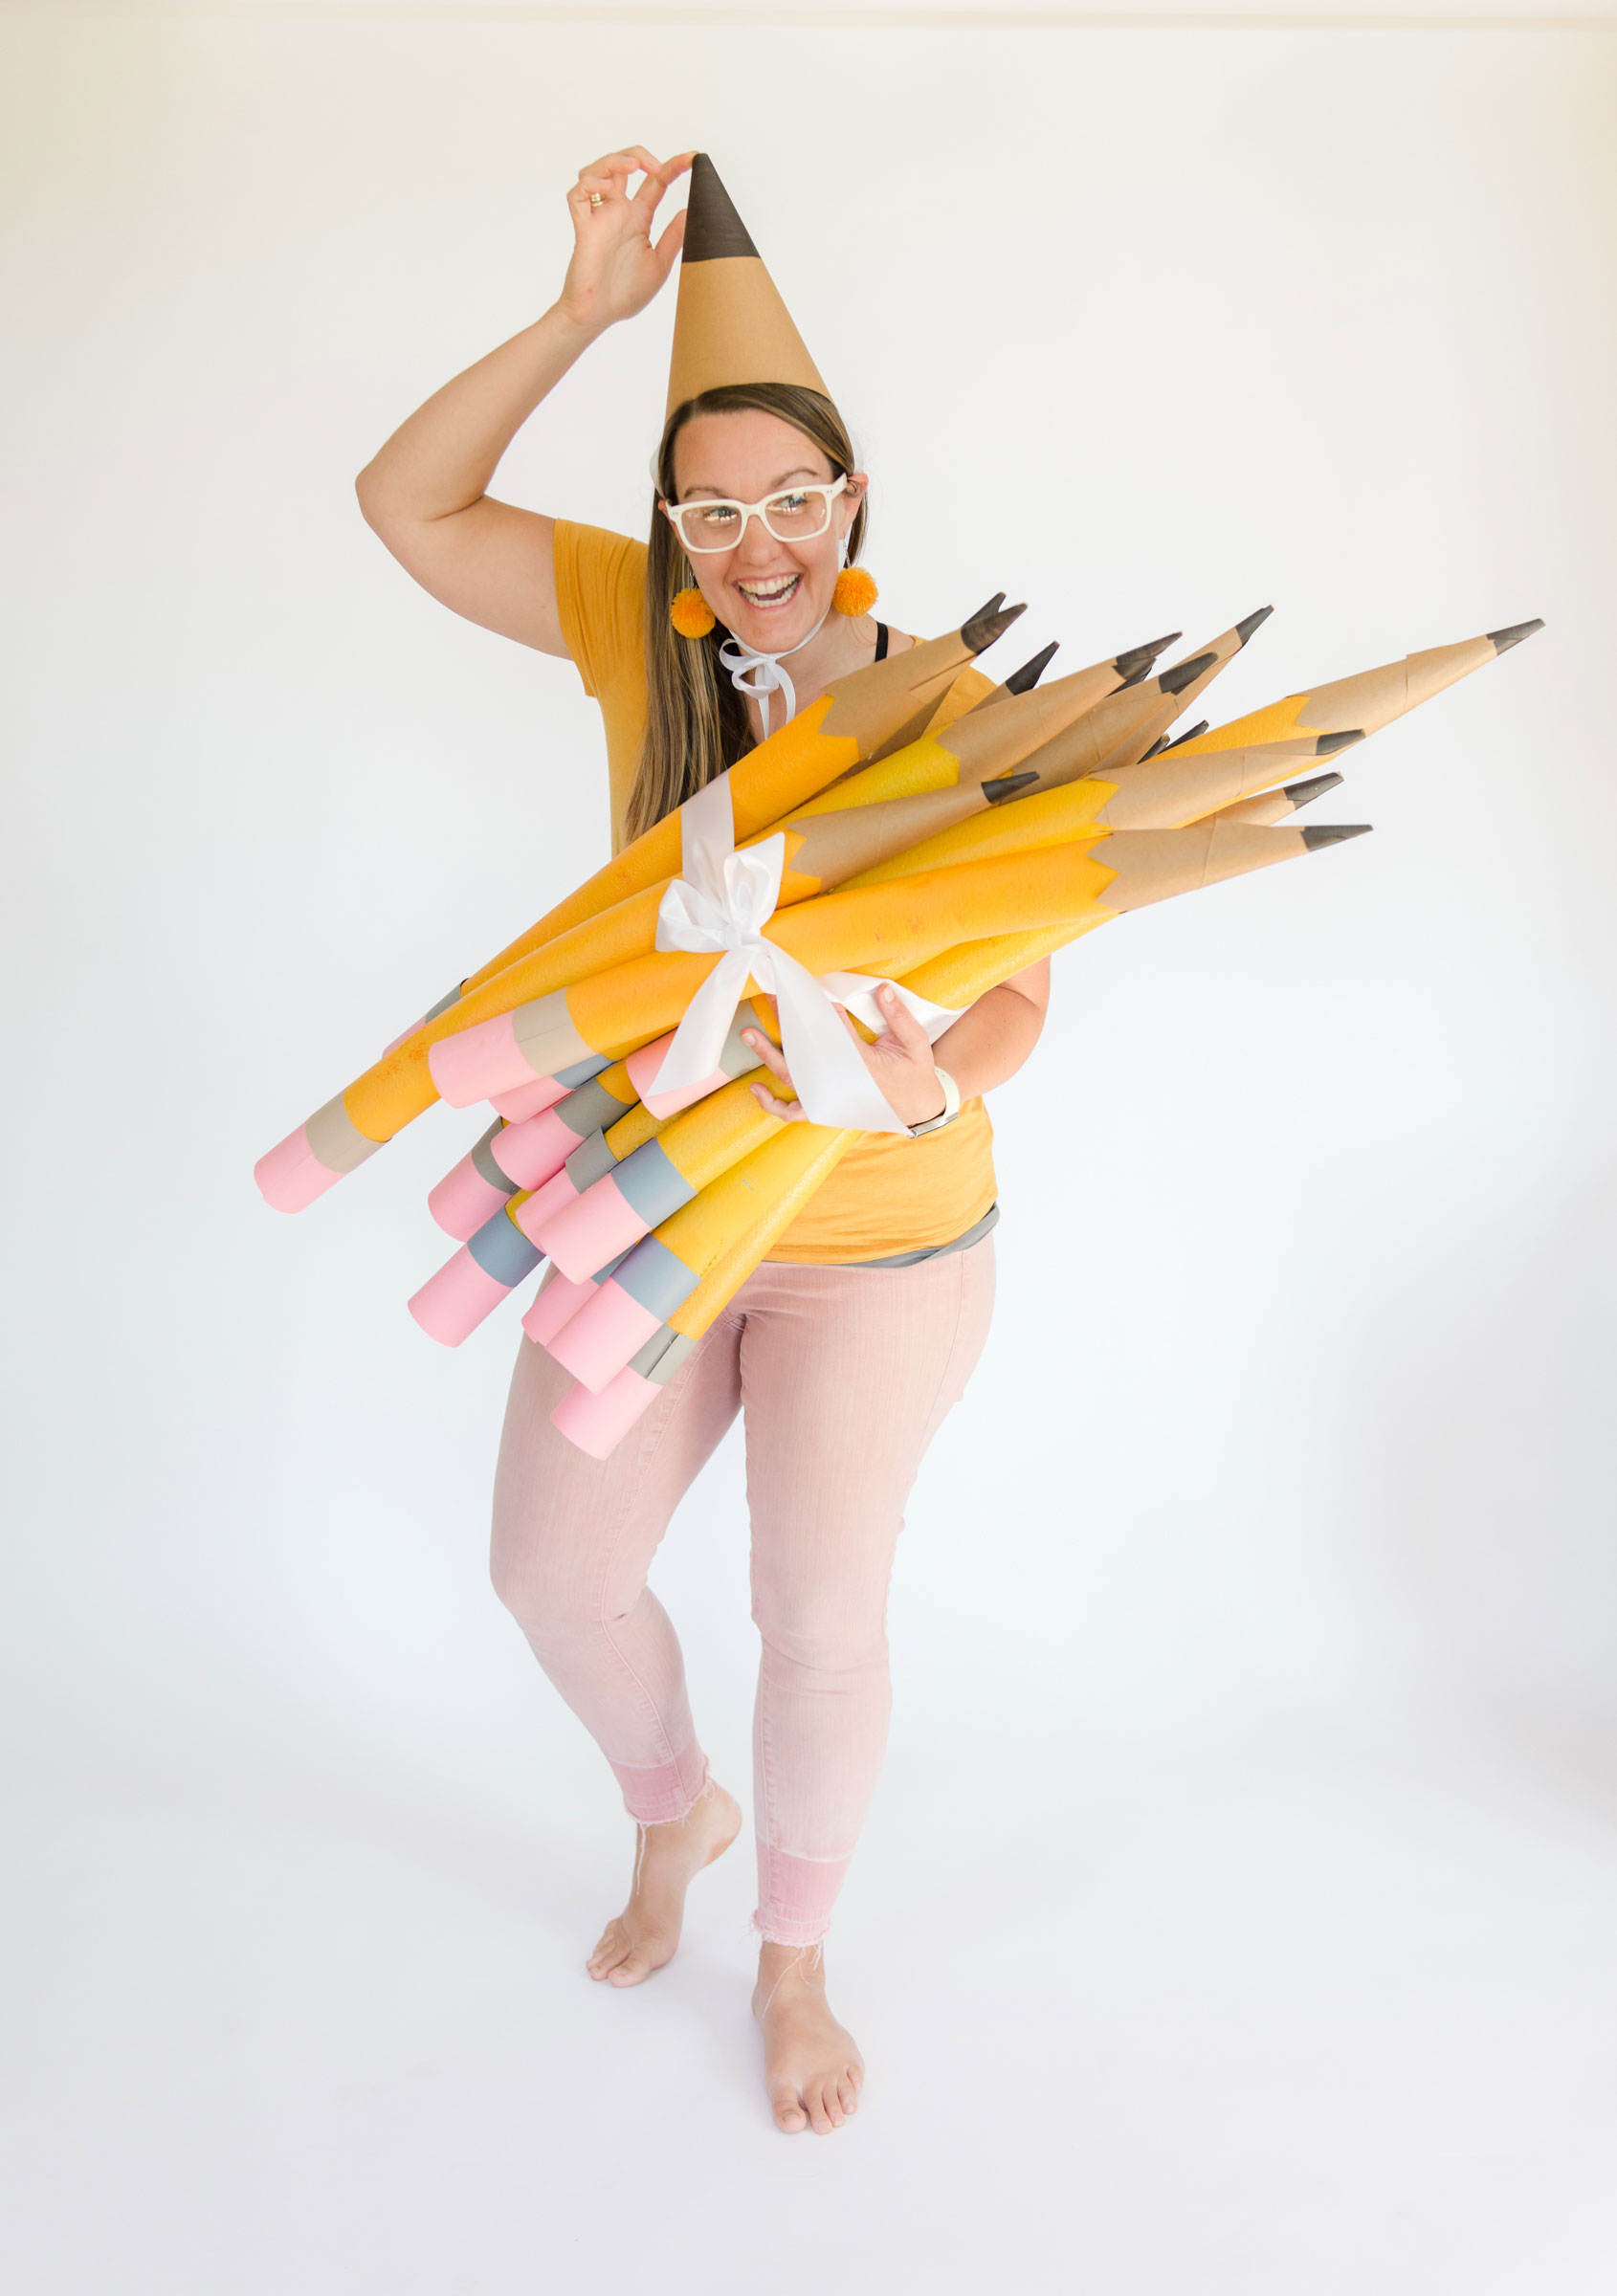 how to make large pencils out of pool noodles, large teacher pencils from pool noodles, large pool noodle crafts, pool noodle pencils